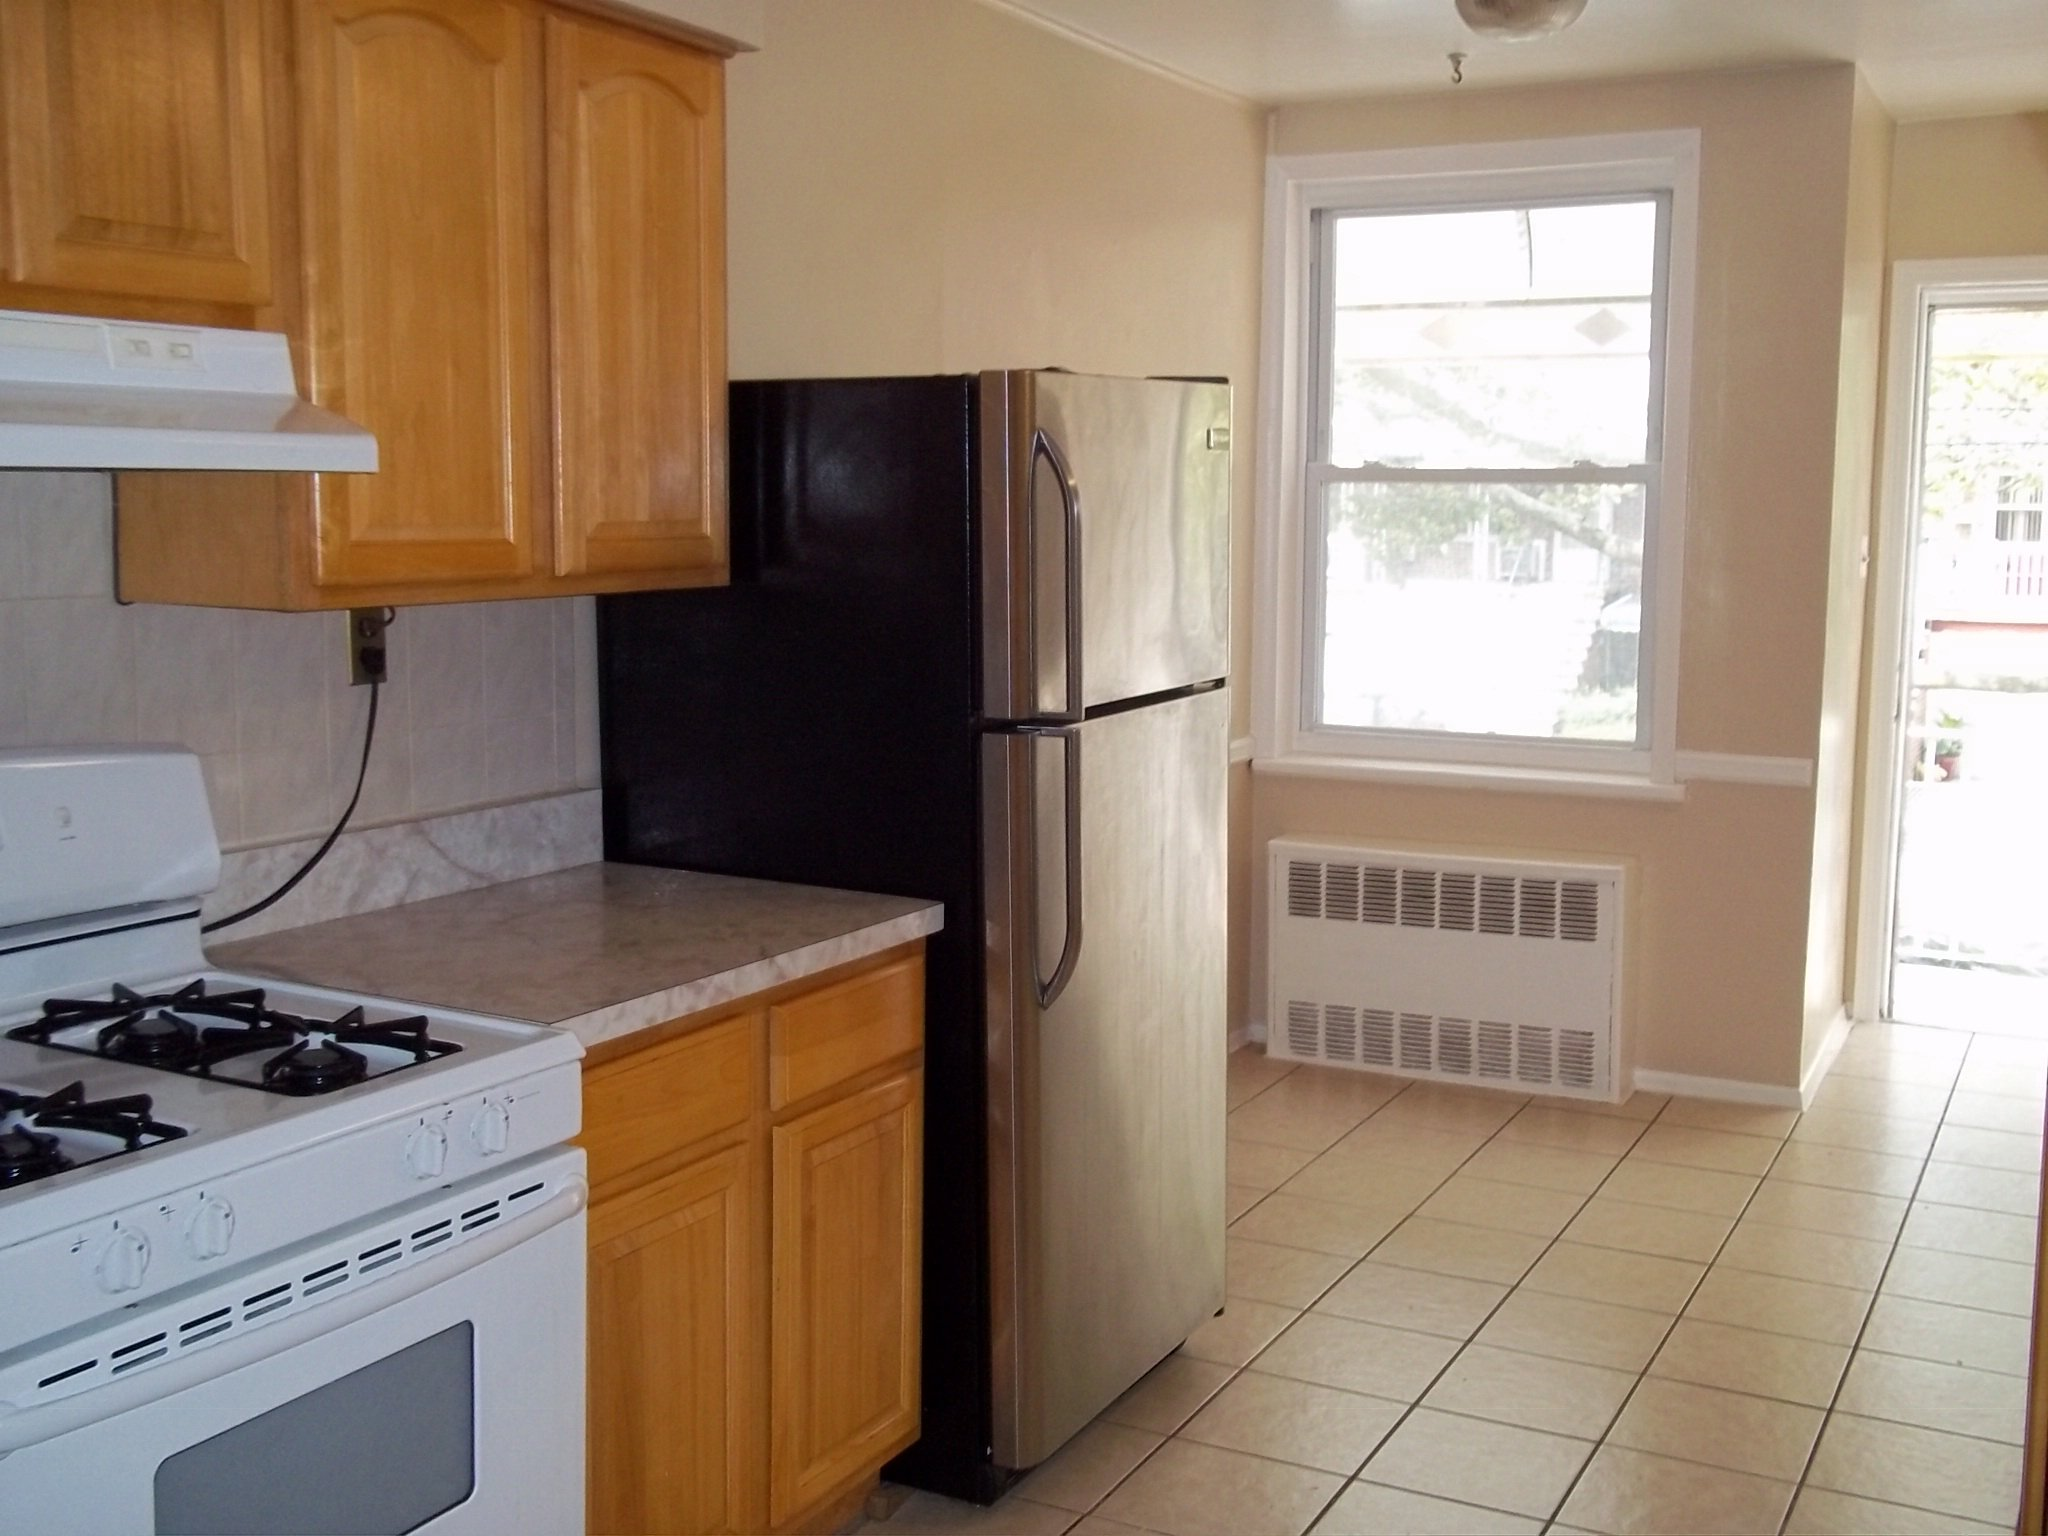 2 bedroom canarsie apartment for rent brooklyn crg3097 for Apartments for rent two bedroom